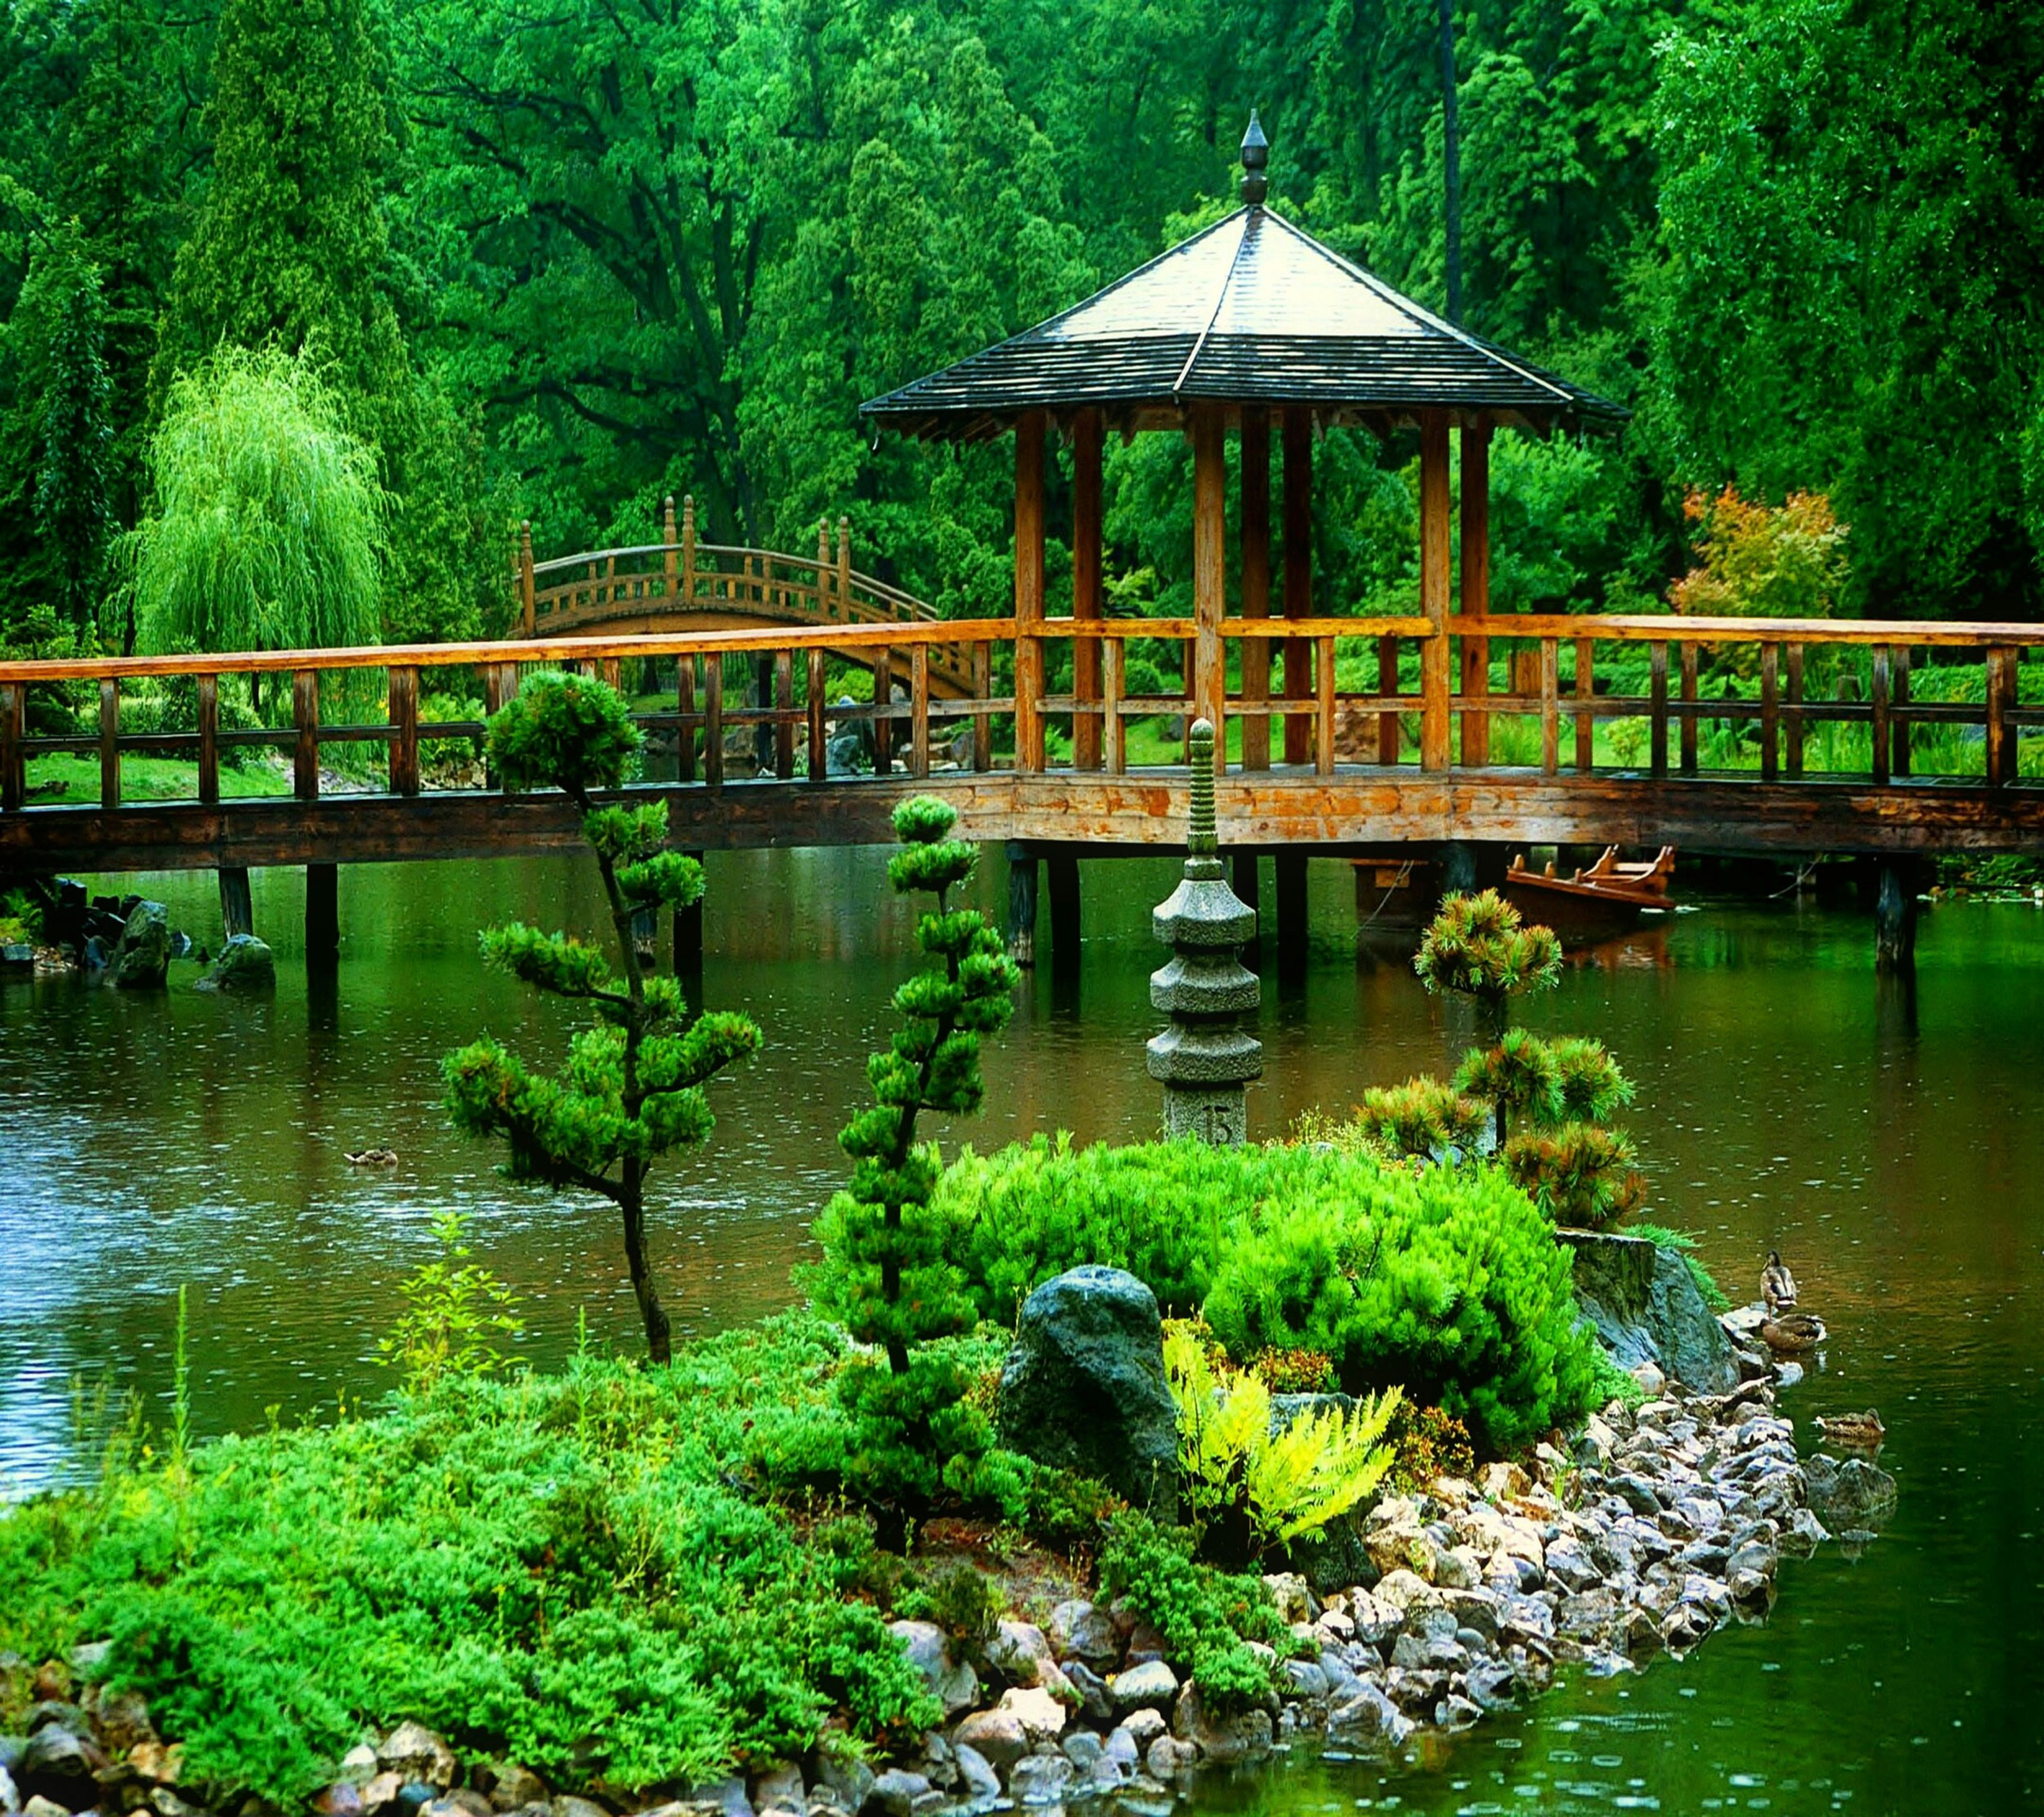 water, bridge - man made structure, connection, tree, river, built structure, architecture, footbridge, bridge, reflection, green color, plant, arch bridge, tranquility, growth, nature, waterfront, railing, beauty in nature, forest